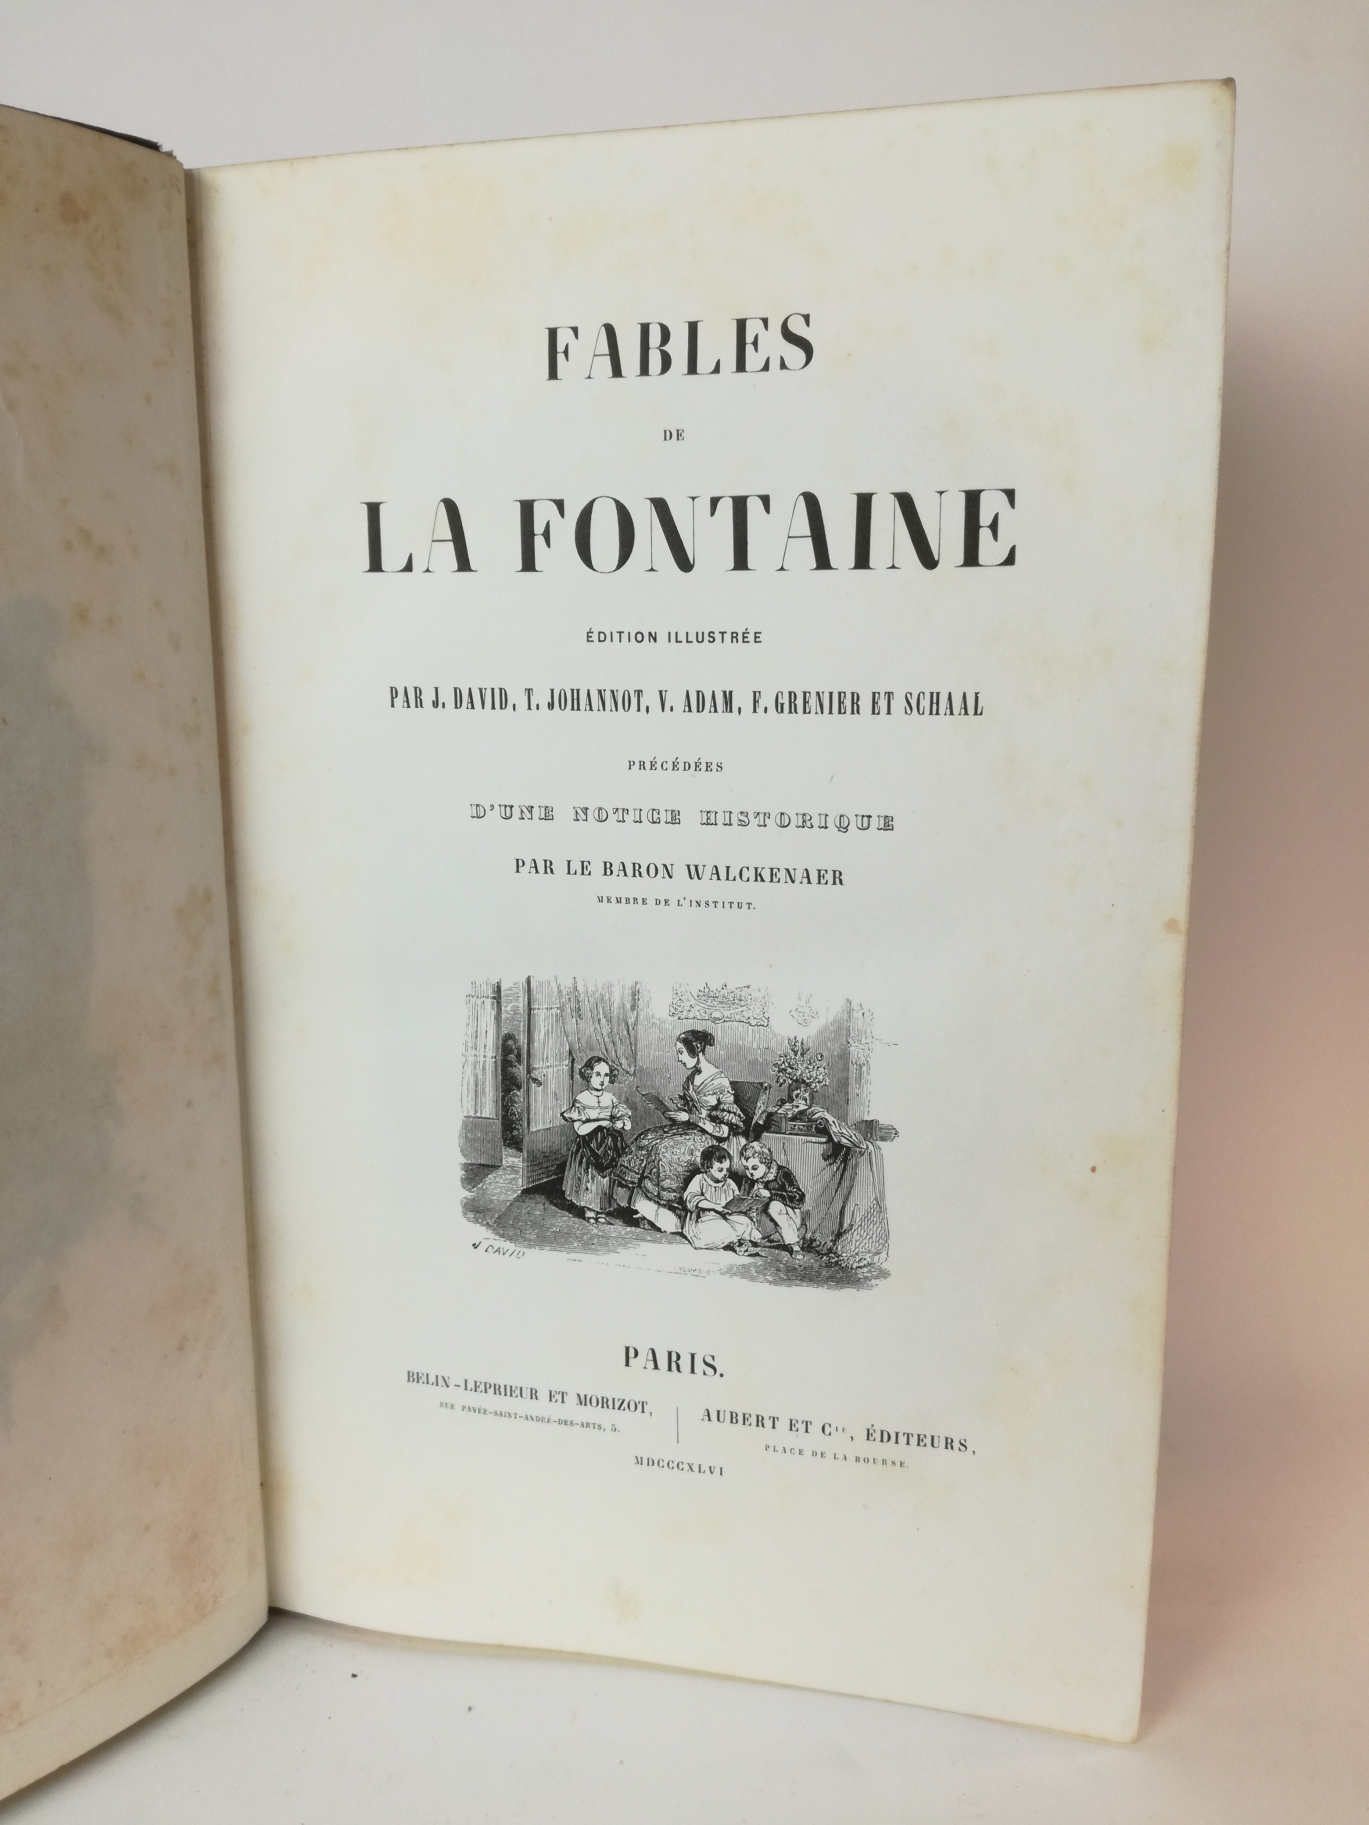 Baron Walckenaer: Fables de La Fontaine Edition Illustree